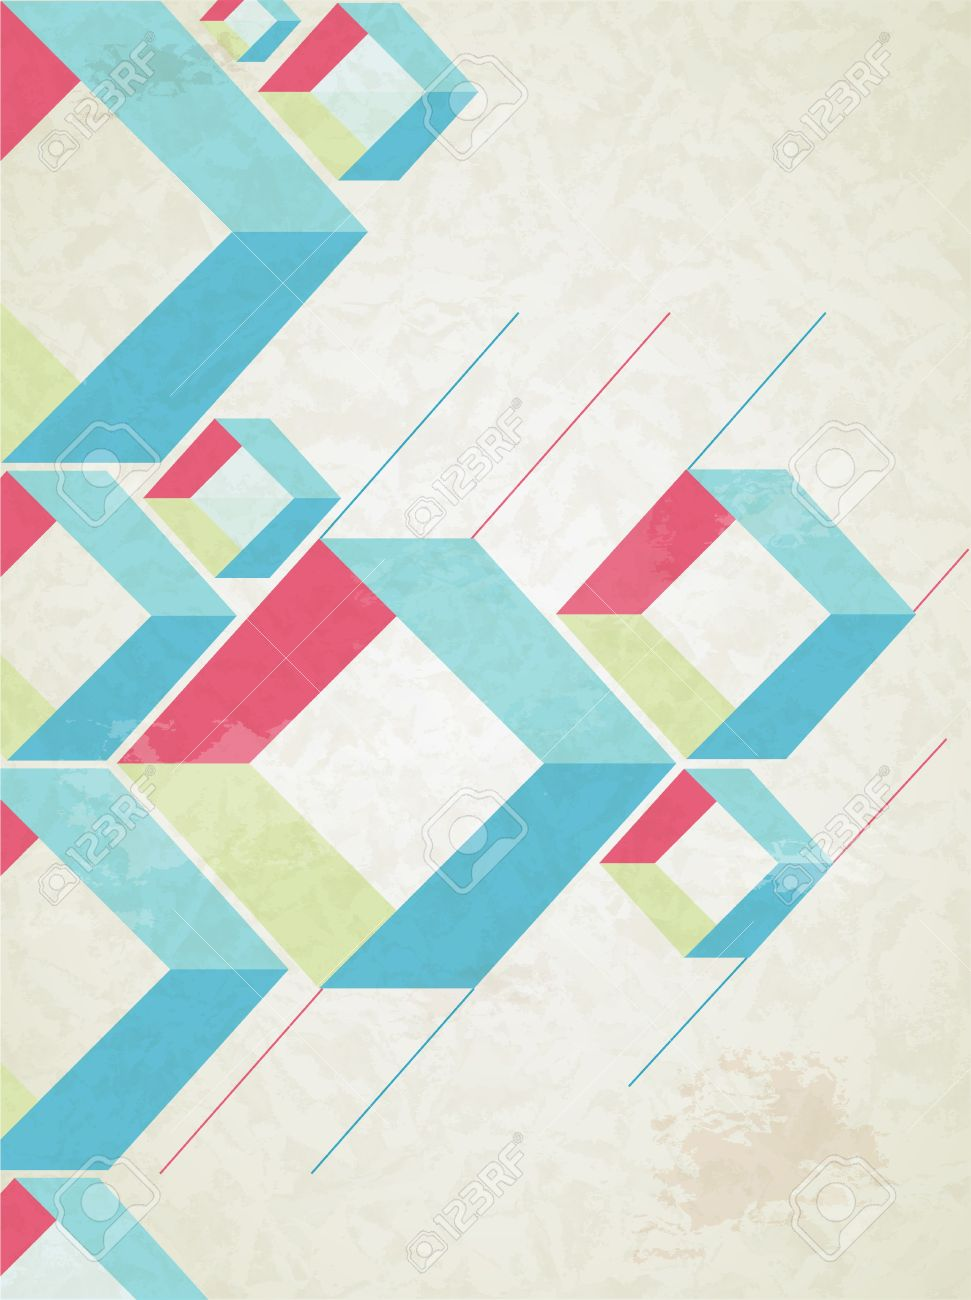 Abstract retro-style background  Vector Stock Vector - 18428889